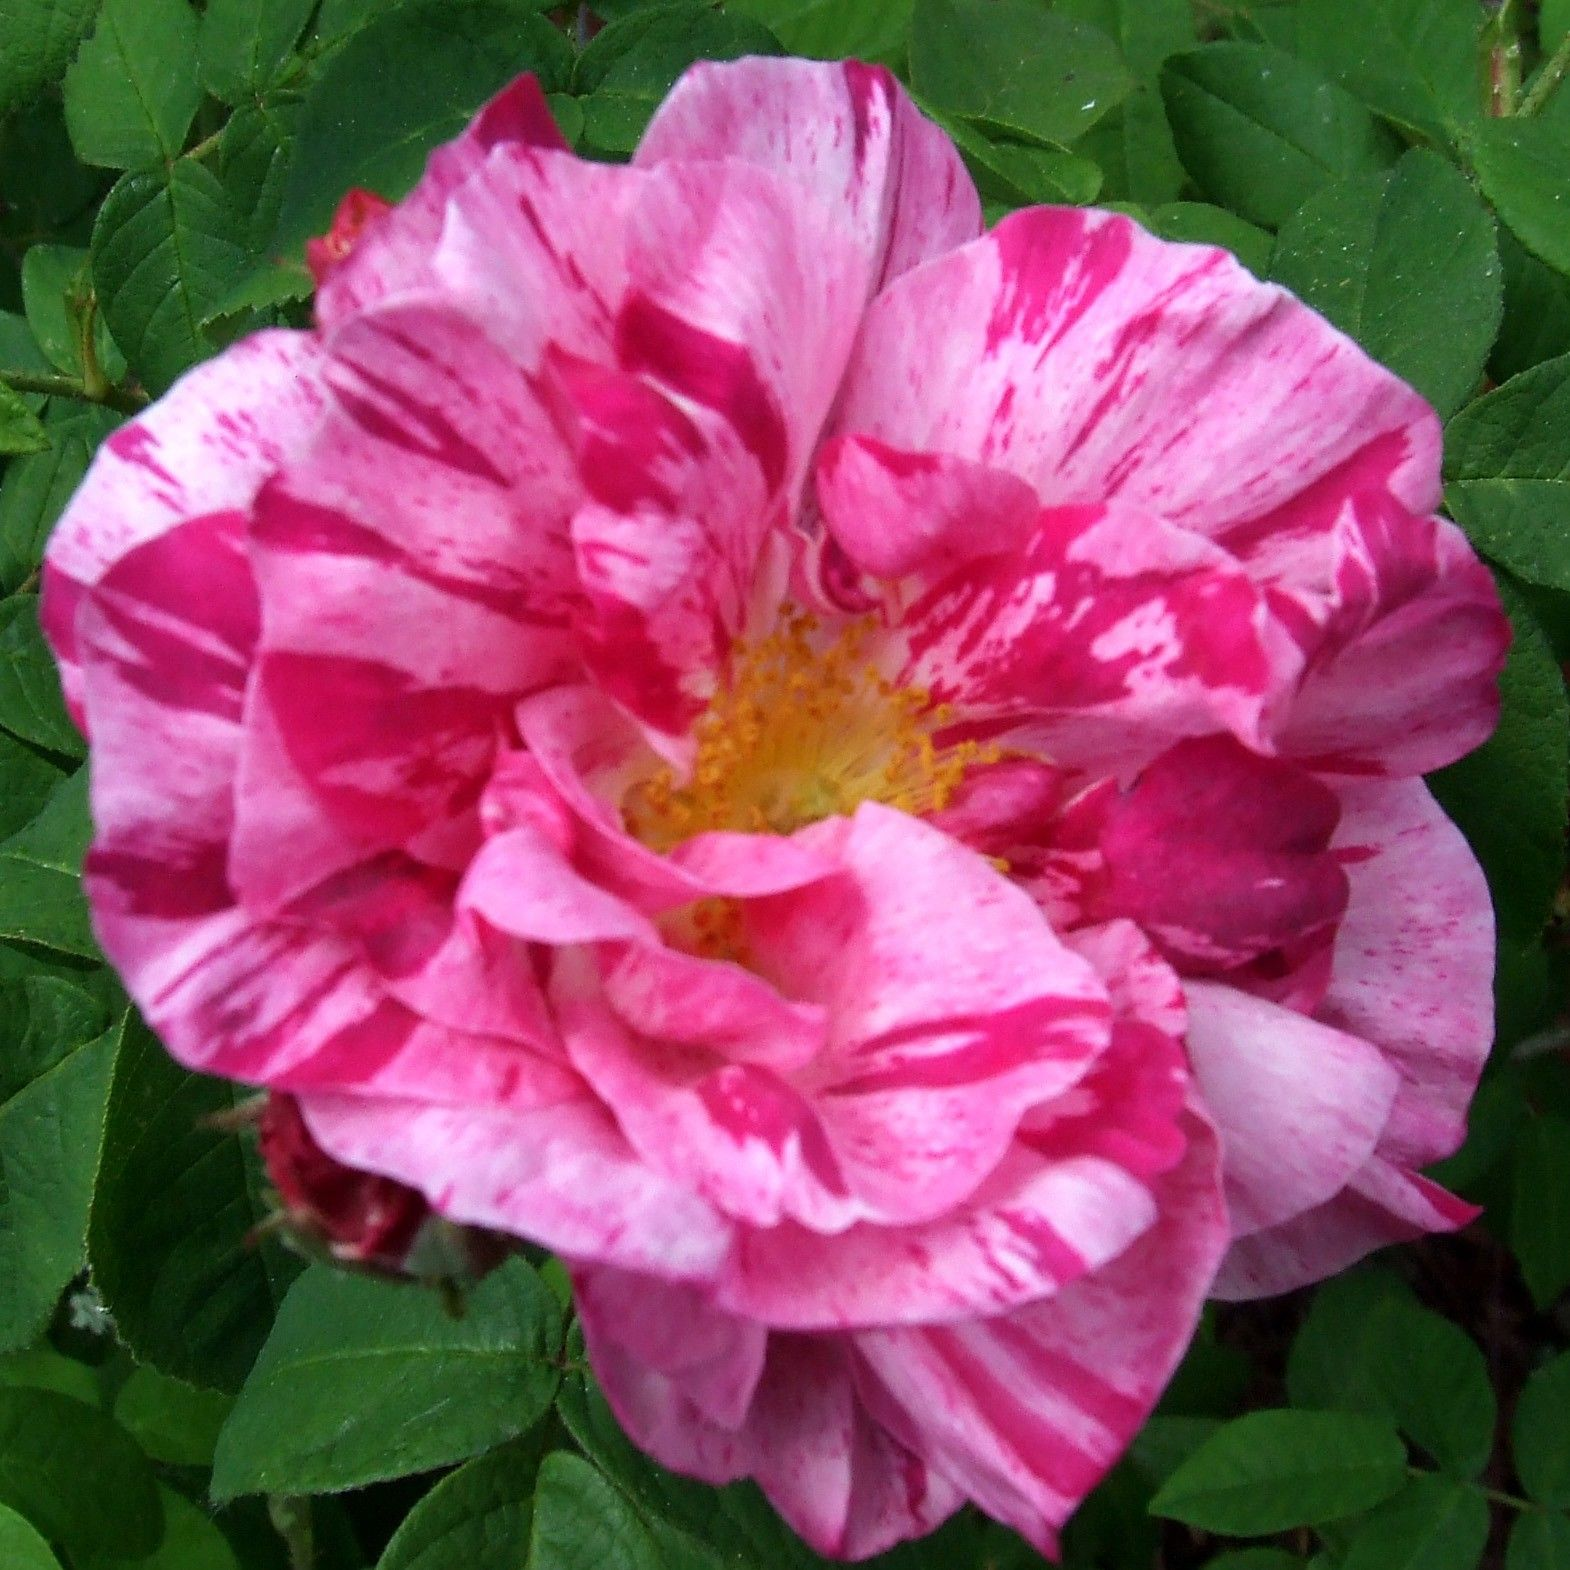 Rosa x gallica Versicolor - Rosier ancien gallique